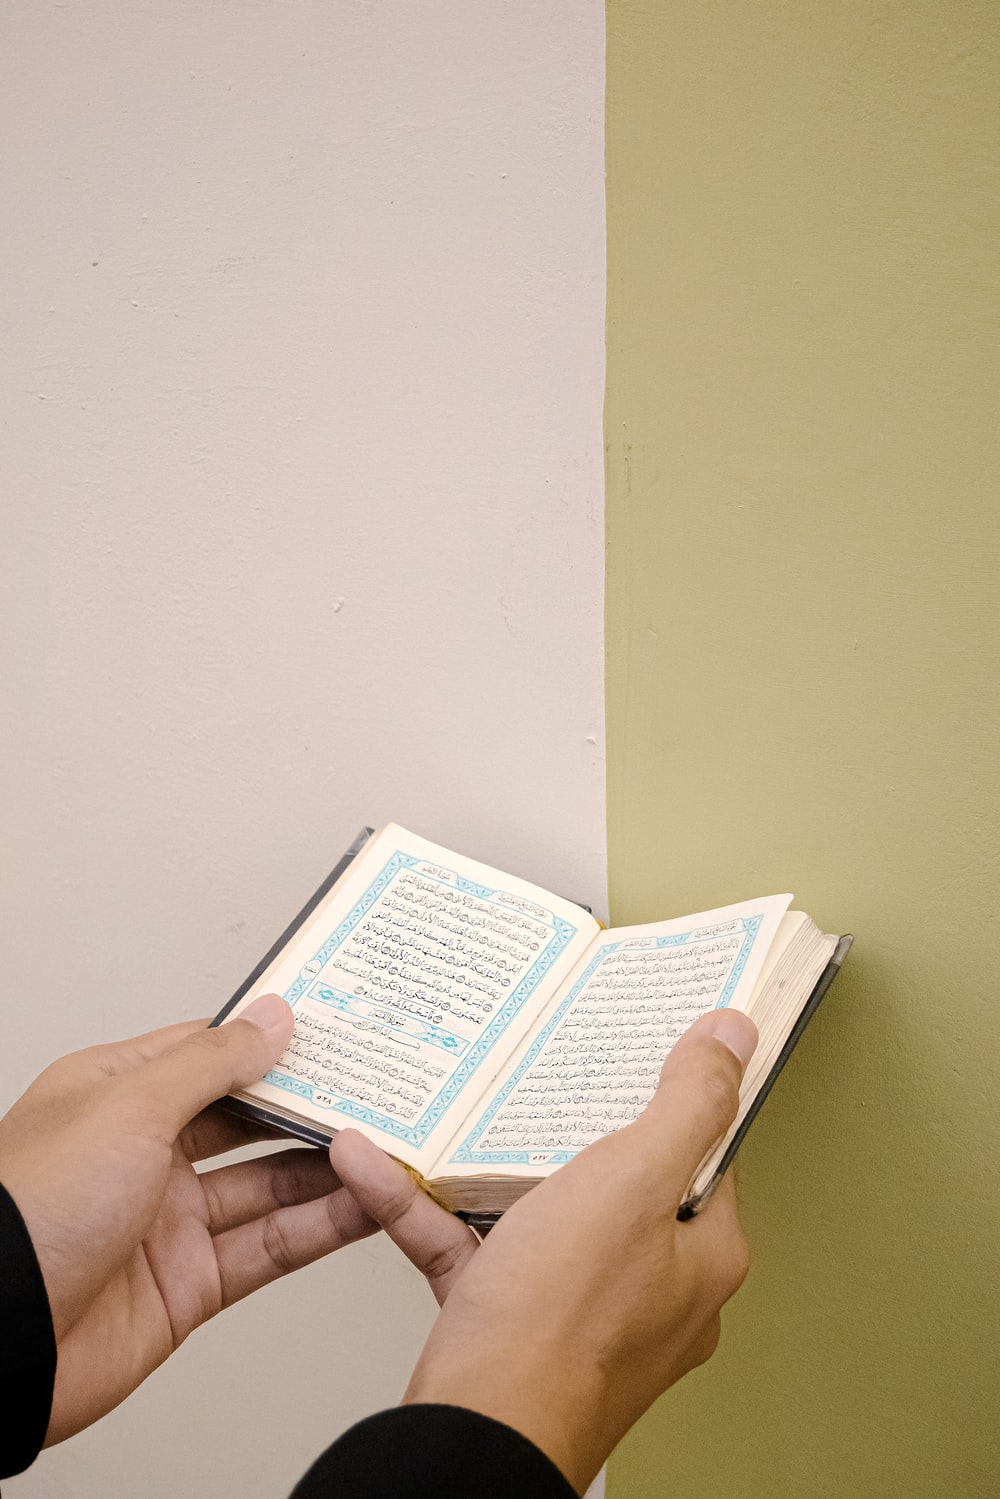 person holding white and blue book